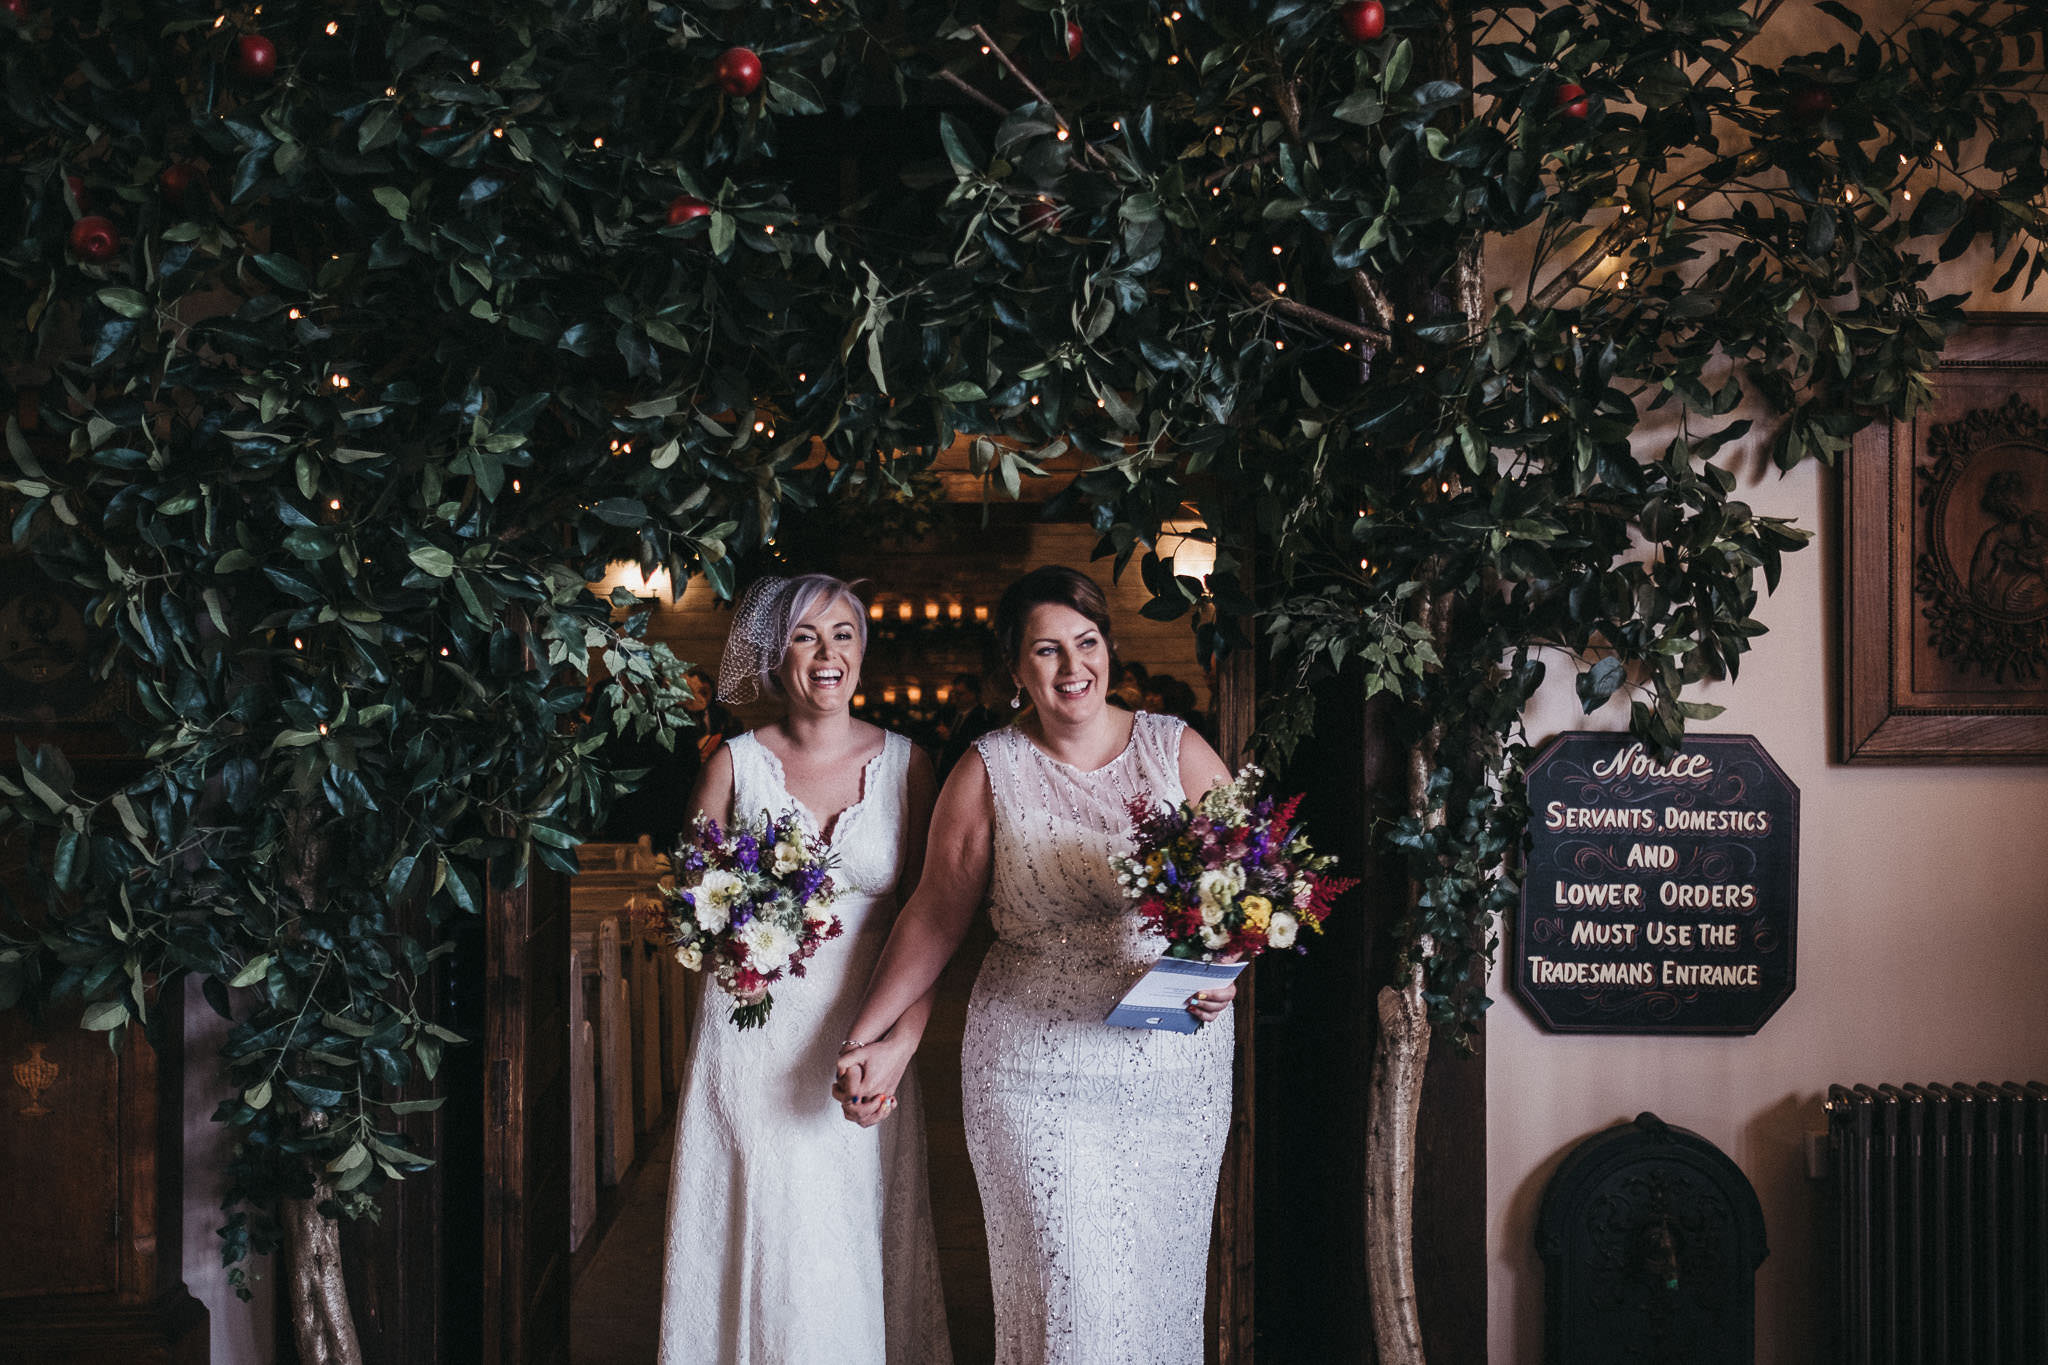 Lucy & Rachel emerge from their wedding ceremony at the South Causey Inn, Durham